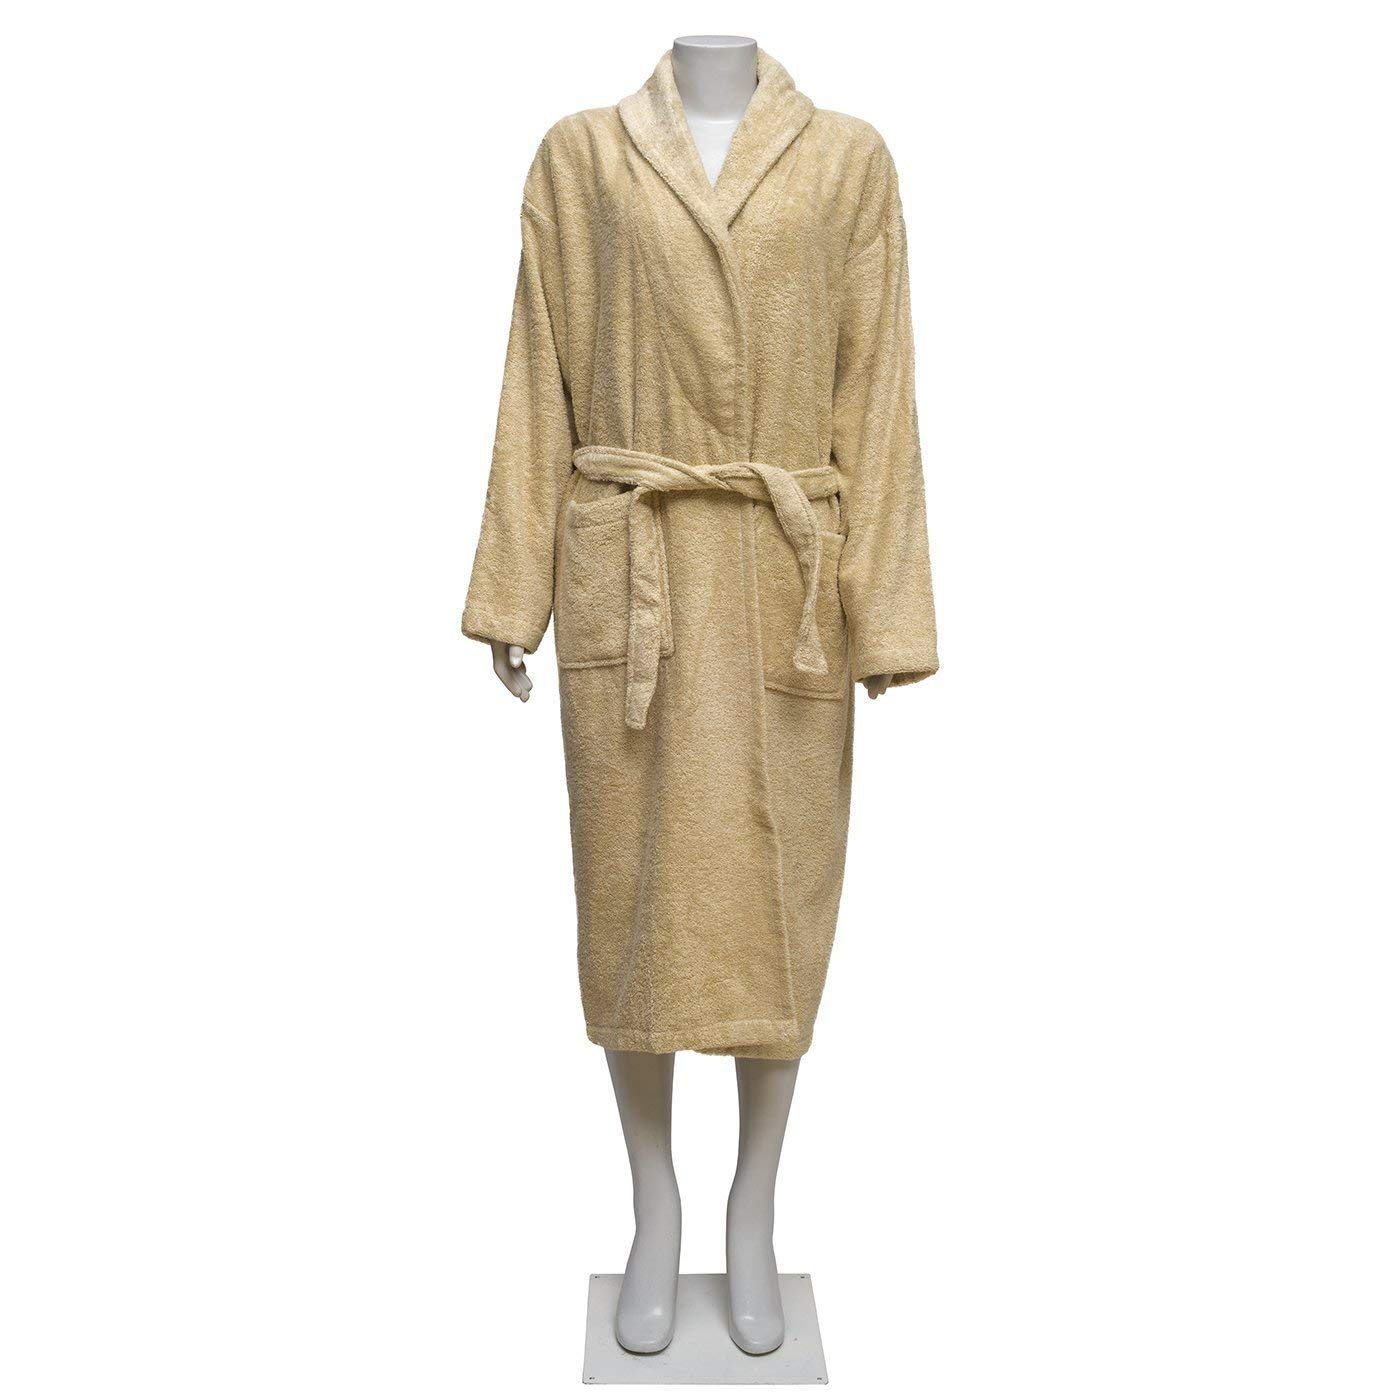 5b5f4e0838 Get Quotations · Bamboo Bathrobe Set